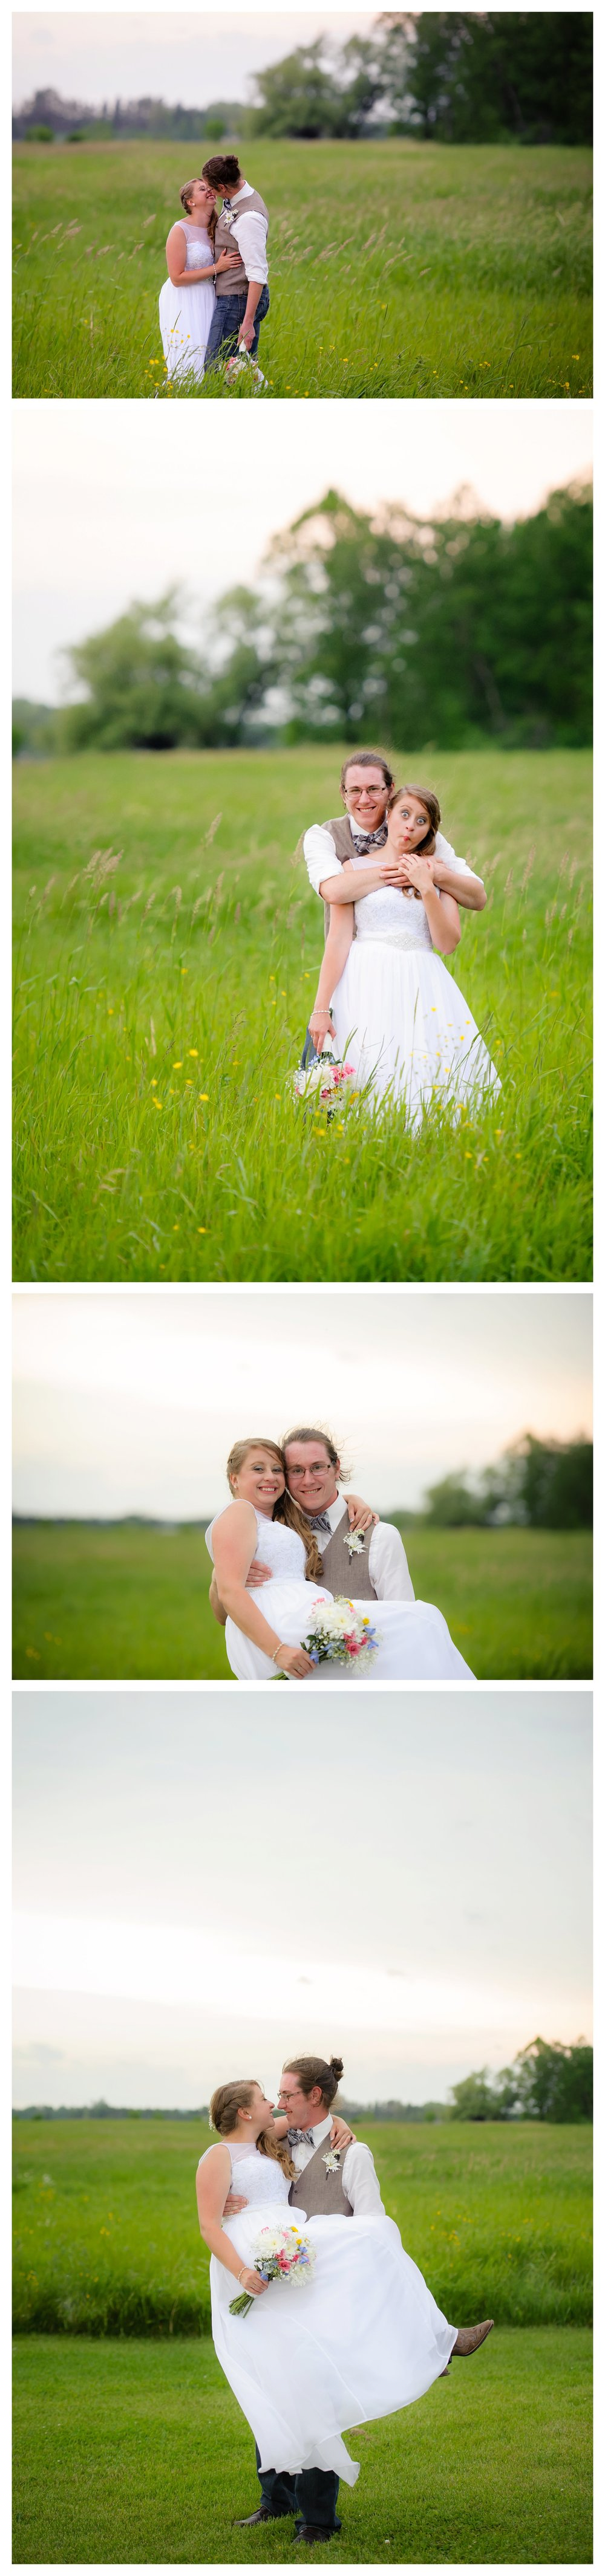 ps 139 photography jen jensen freehands farm wedding storm sunset-1110.jpg